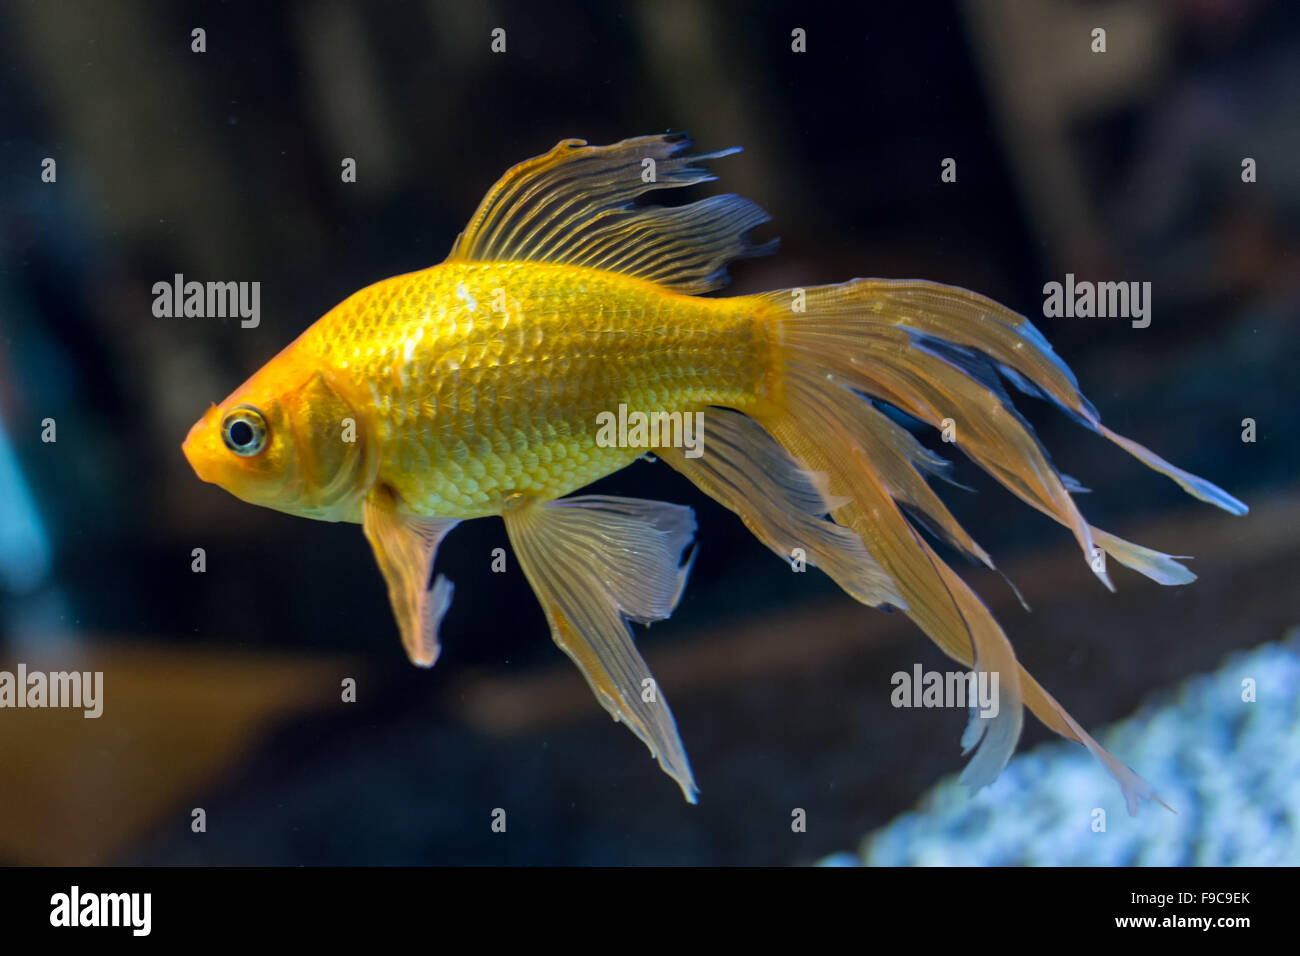 Fish in tank with goldfish - Closeup Of A Single Fantail Goldfish Swimming In A Fish Tank Stock Image